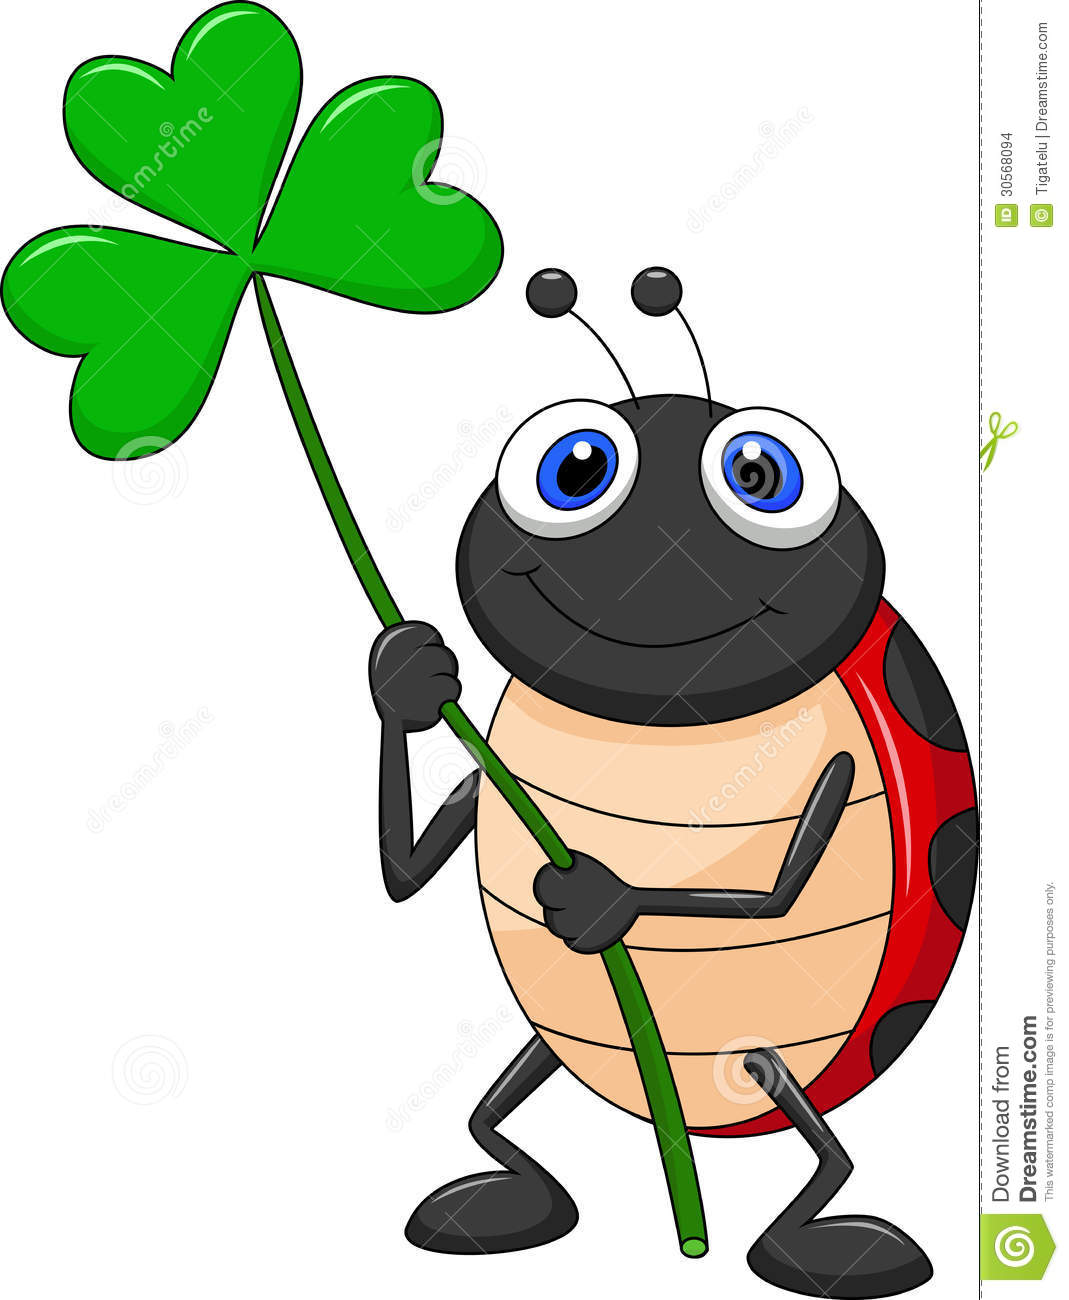 Cute Ladybug Cartoon With Clover Leaf Stock Images - Image: 30568094